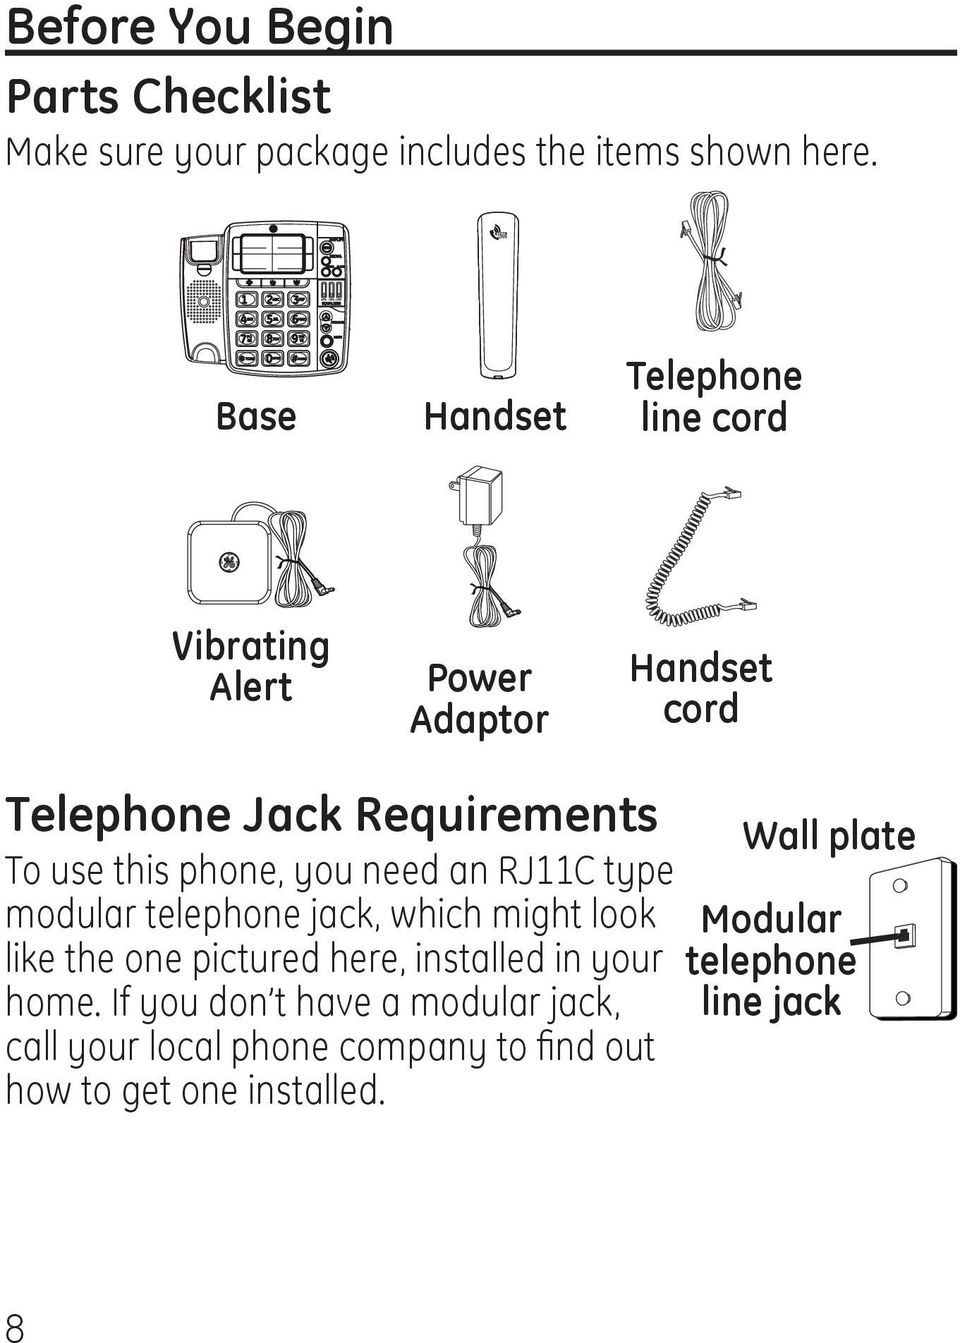 phone, you need an RJ11C type modular telephone jack, which might look like the one pictured here, installed in your